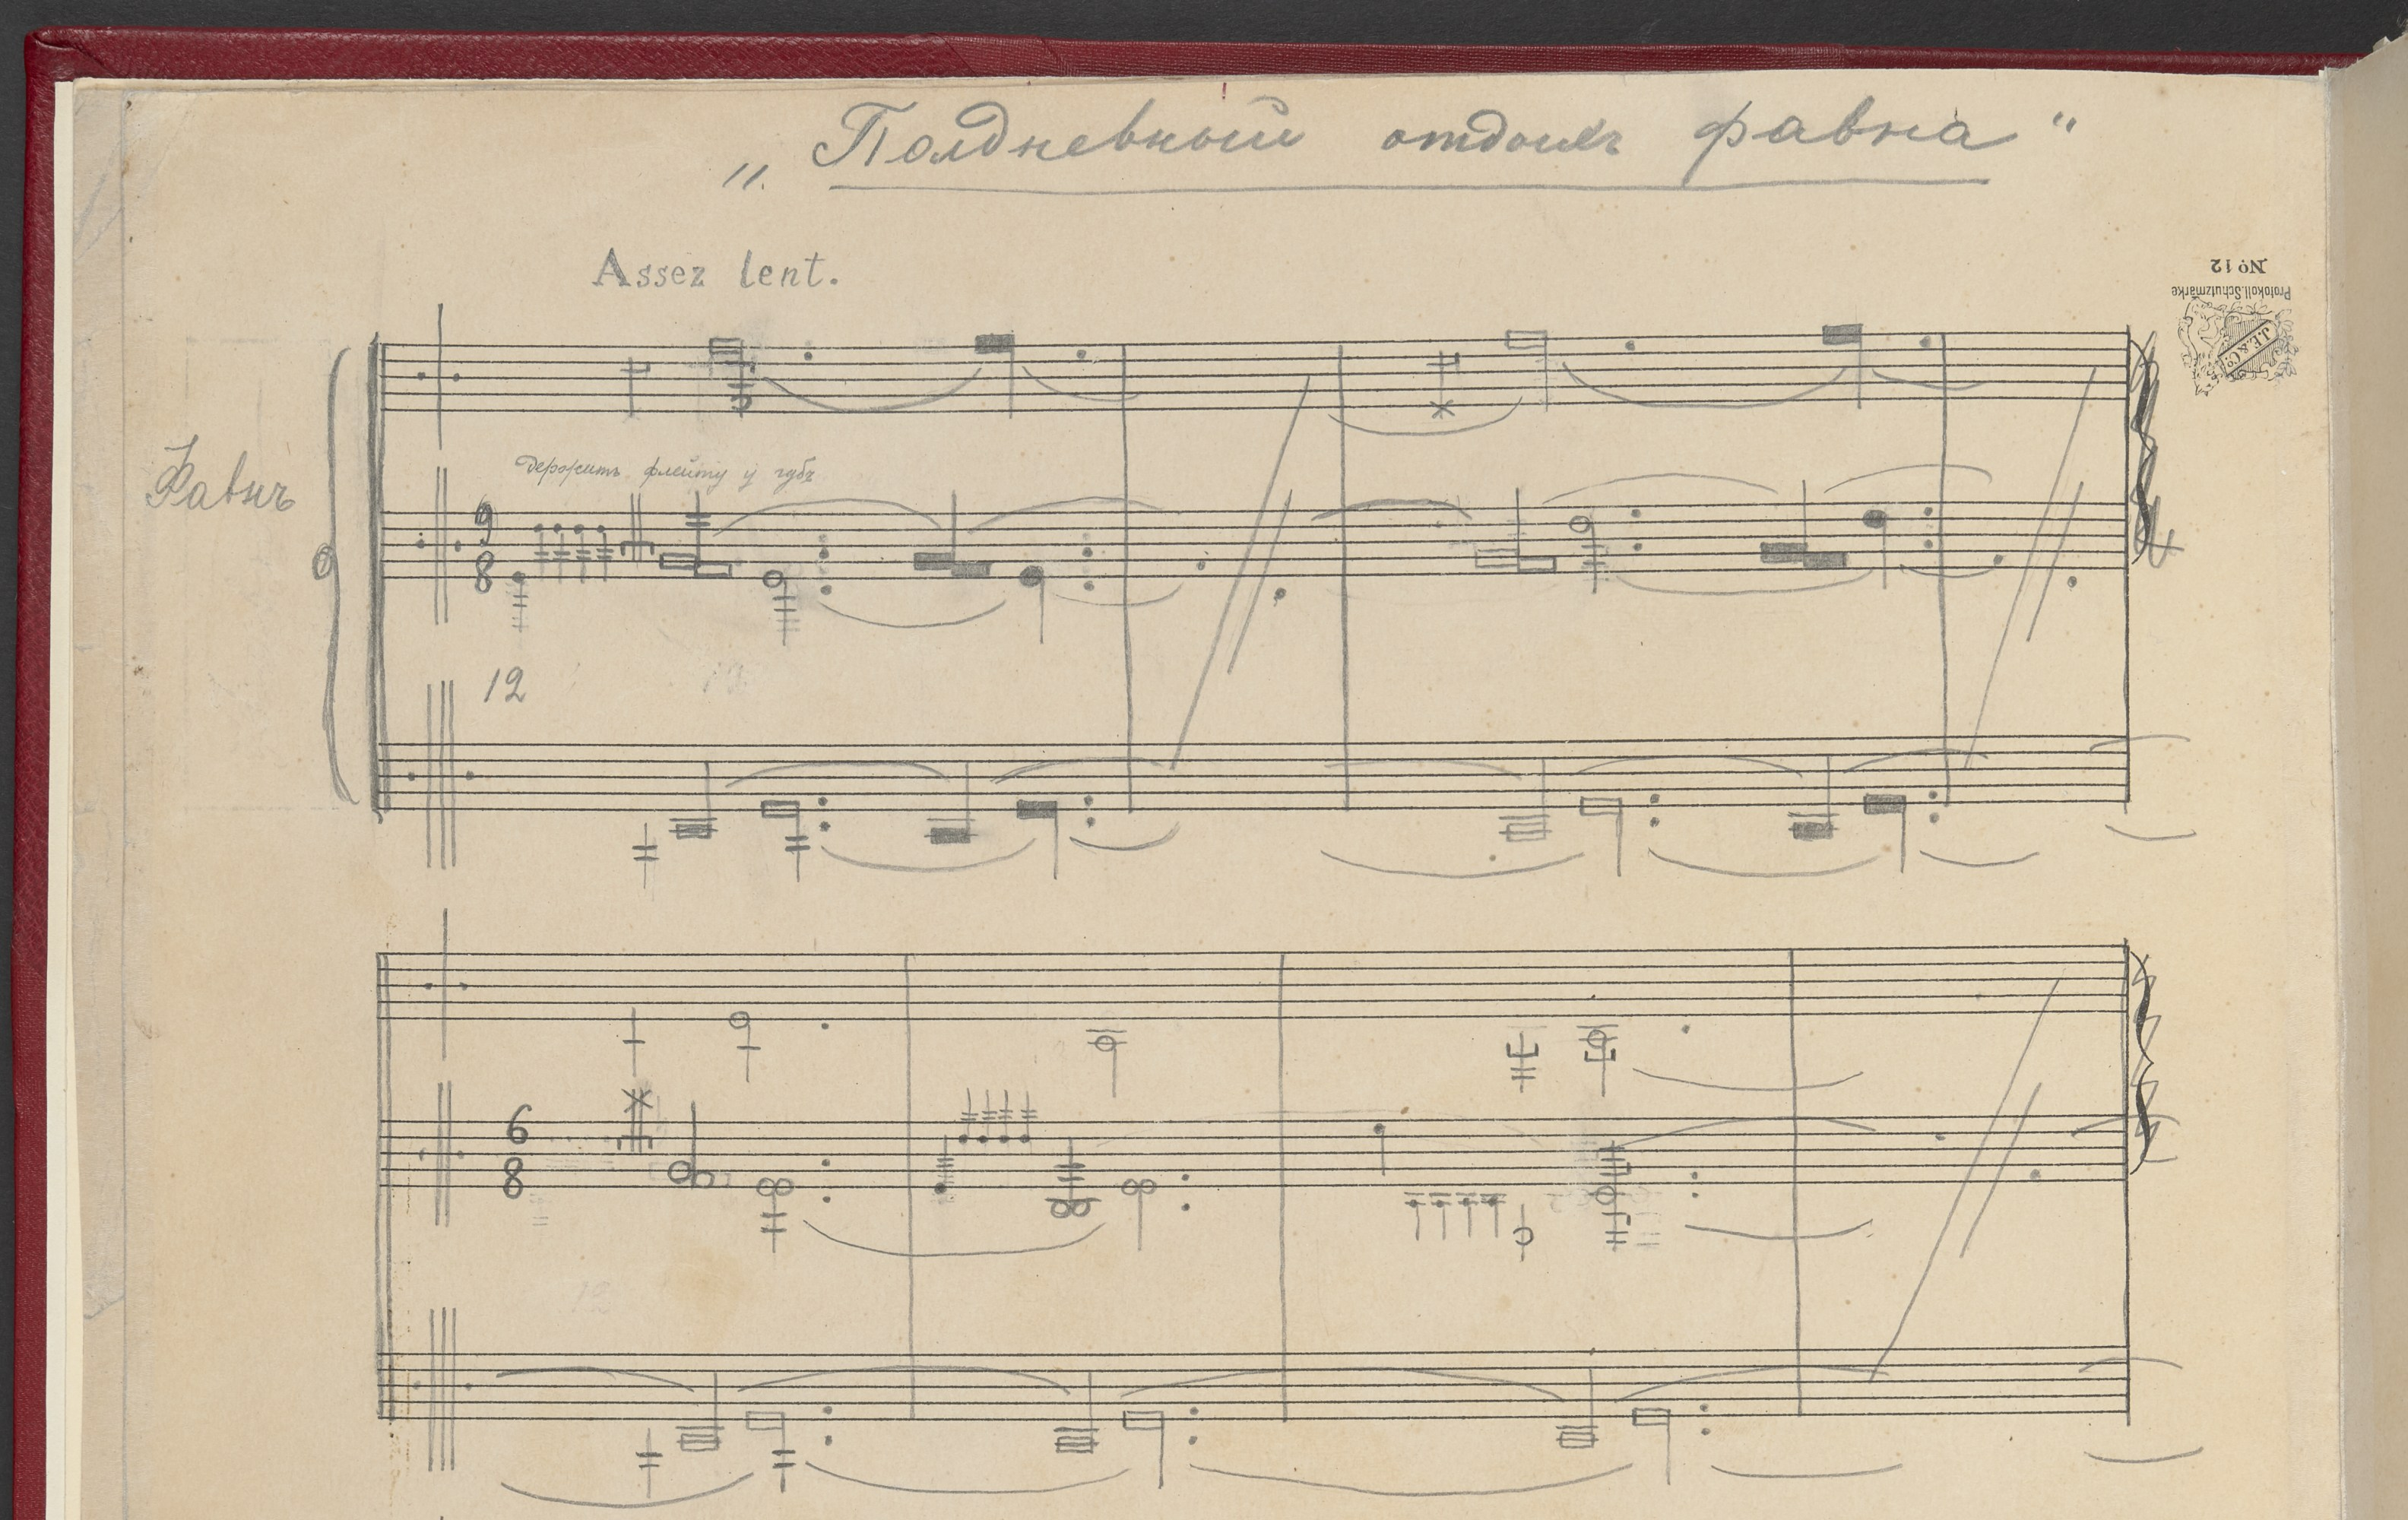 Nijinsky's choreographic score to the ballet L'après-midi d'un faune, Add MS 47215